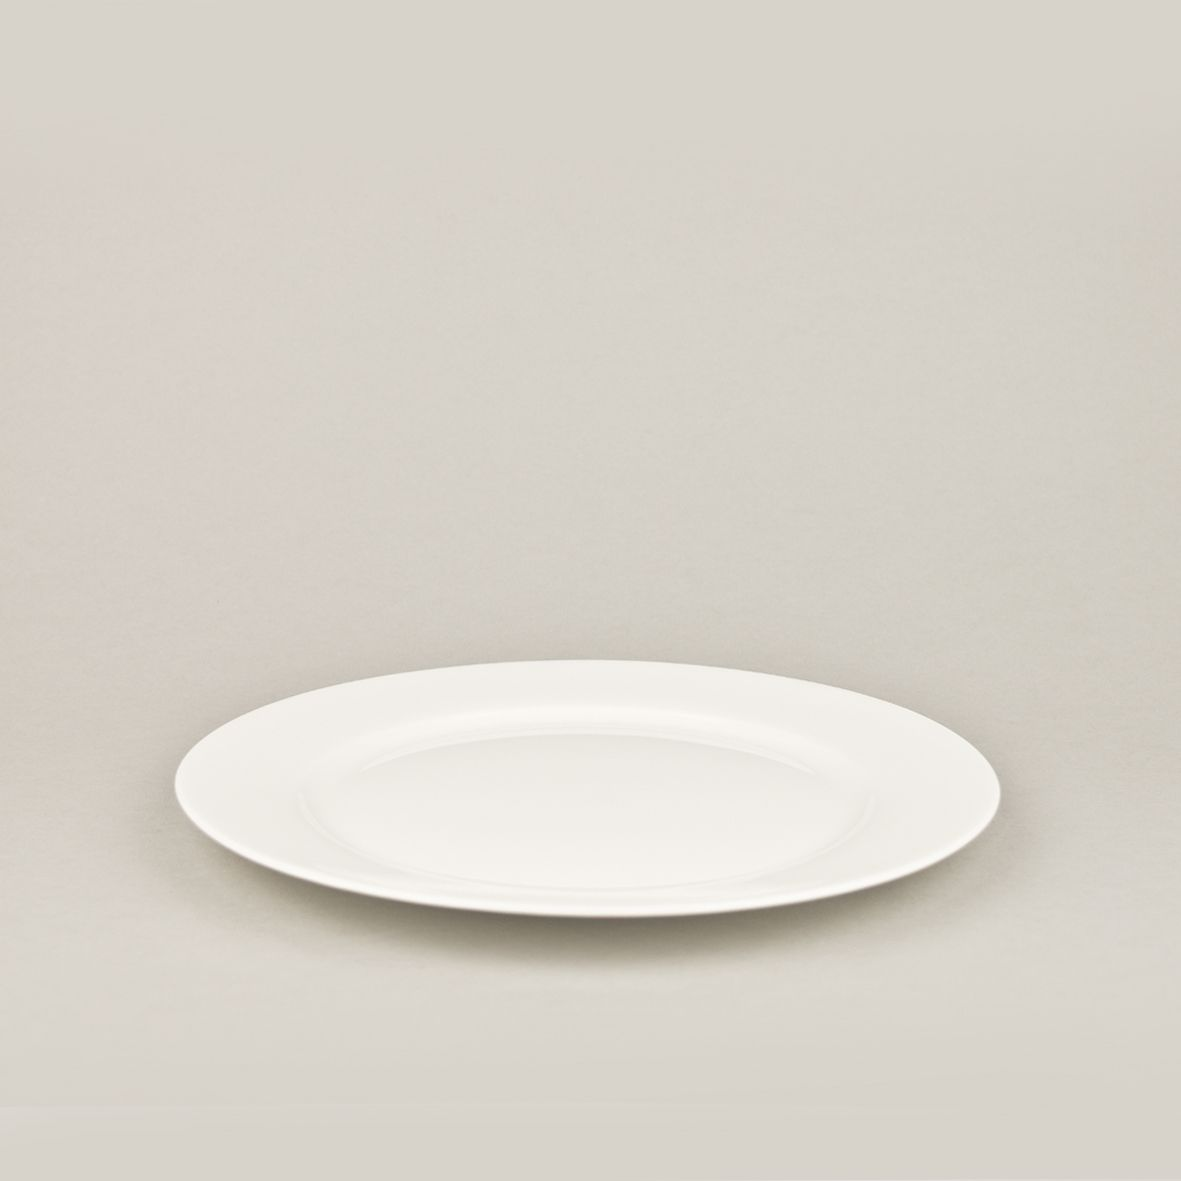 Maxwell and Williams Rim Side Plate Cashmere Bone China  Bone China is considered the highest quality and exclusive ceramic tableware for its extreme ... & Maxwell u0026 Williams Cashmere Bone China - Rim Side Plate | Side ...